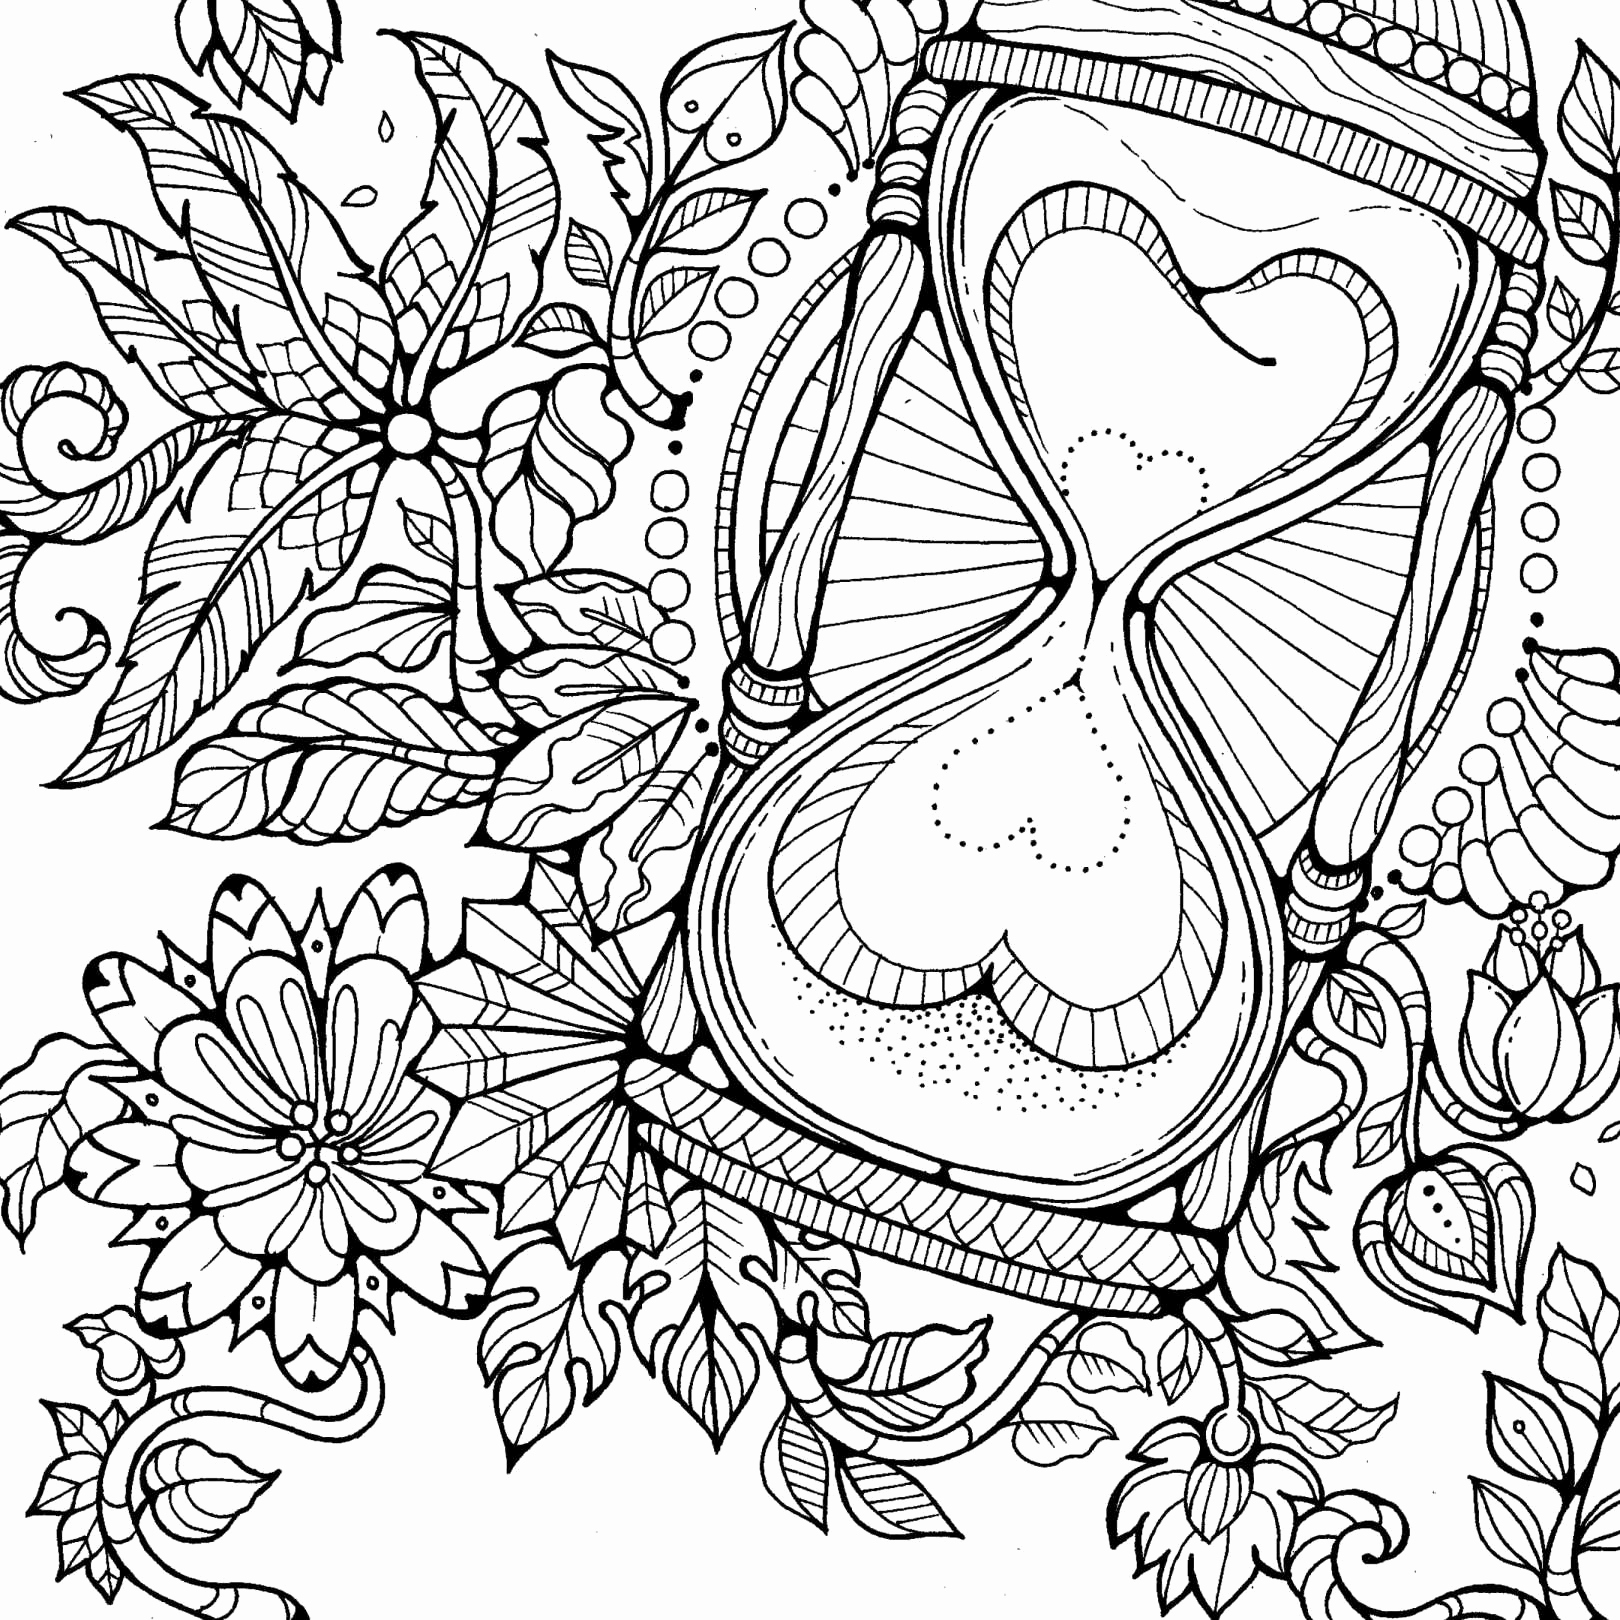 Merry Christmas Coloring Pages For Adults With Online Penguin